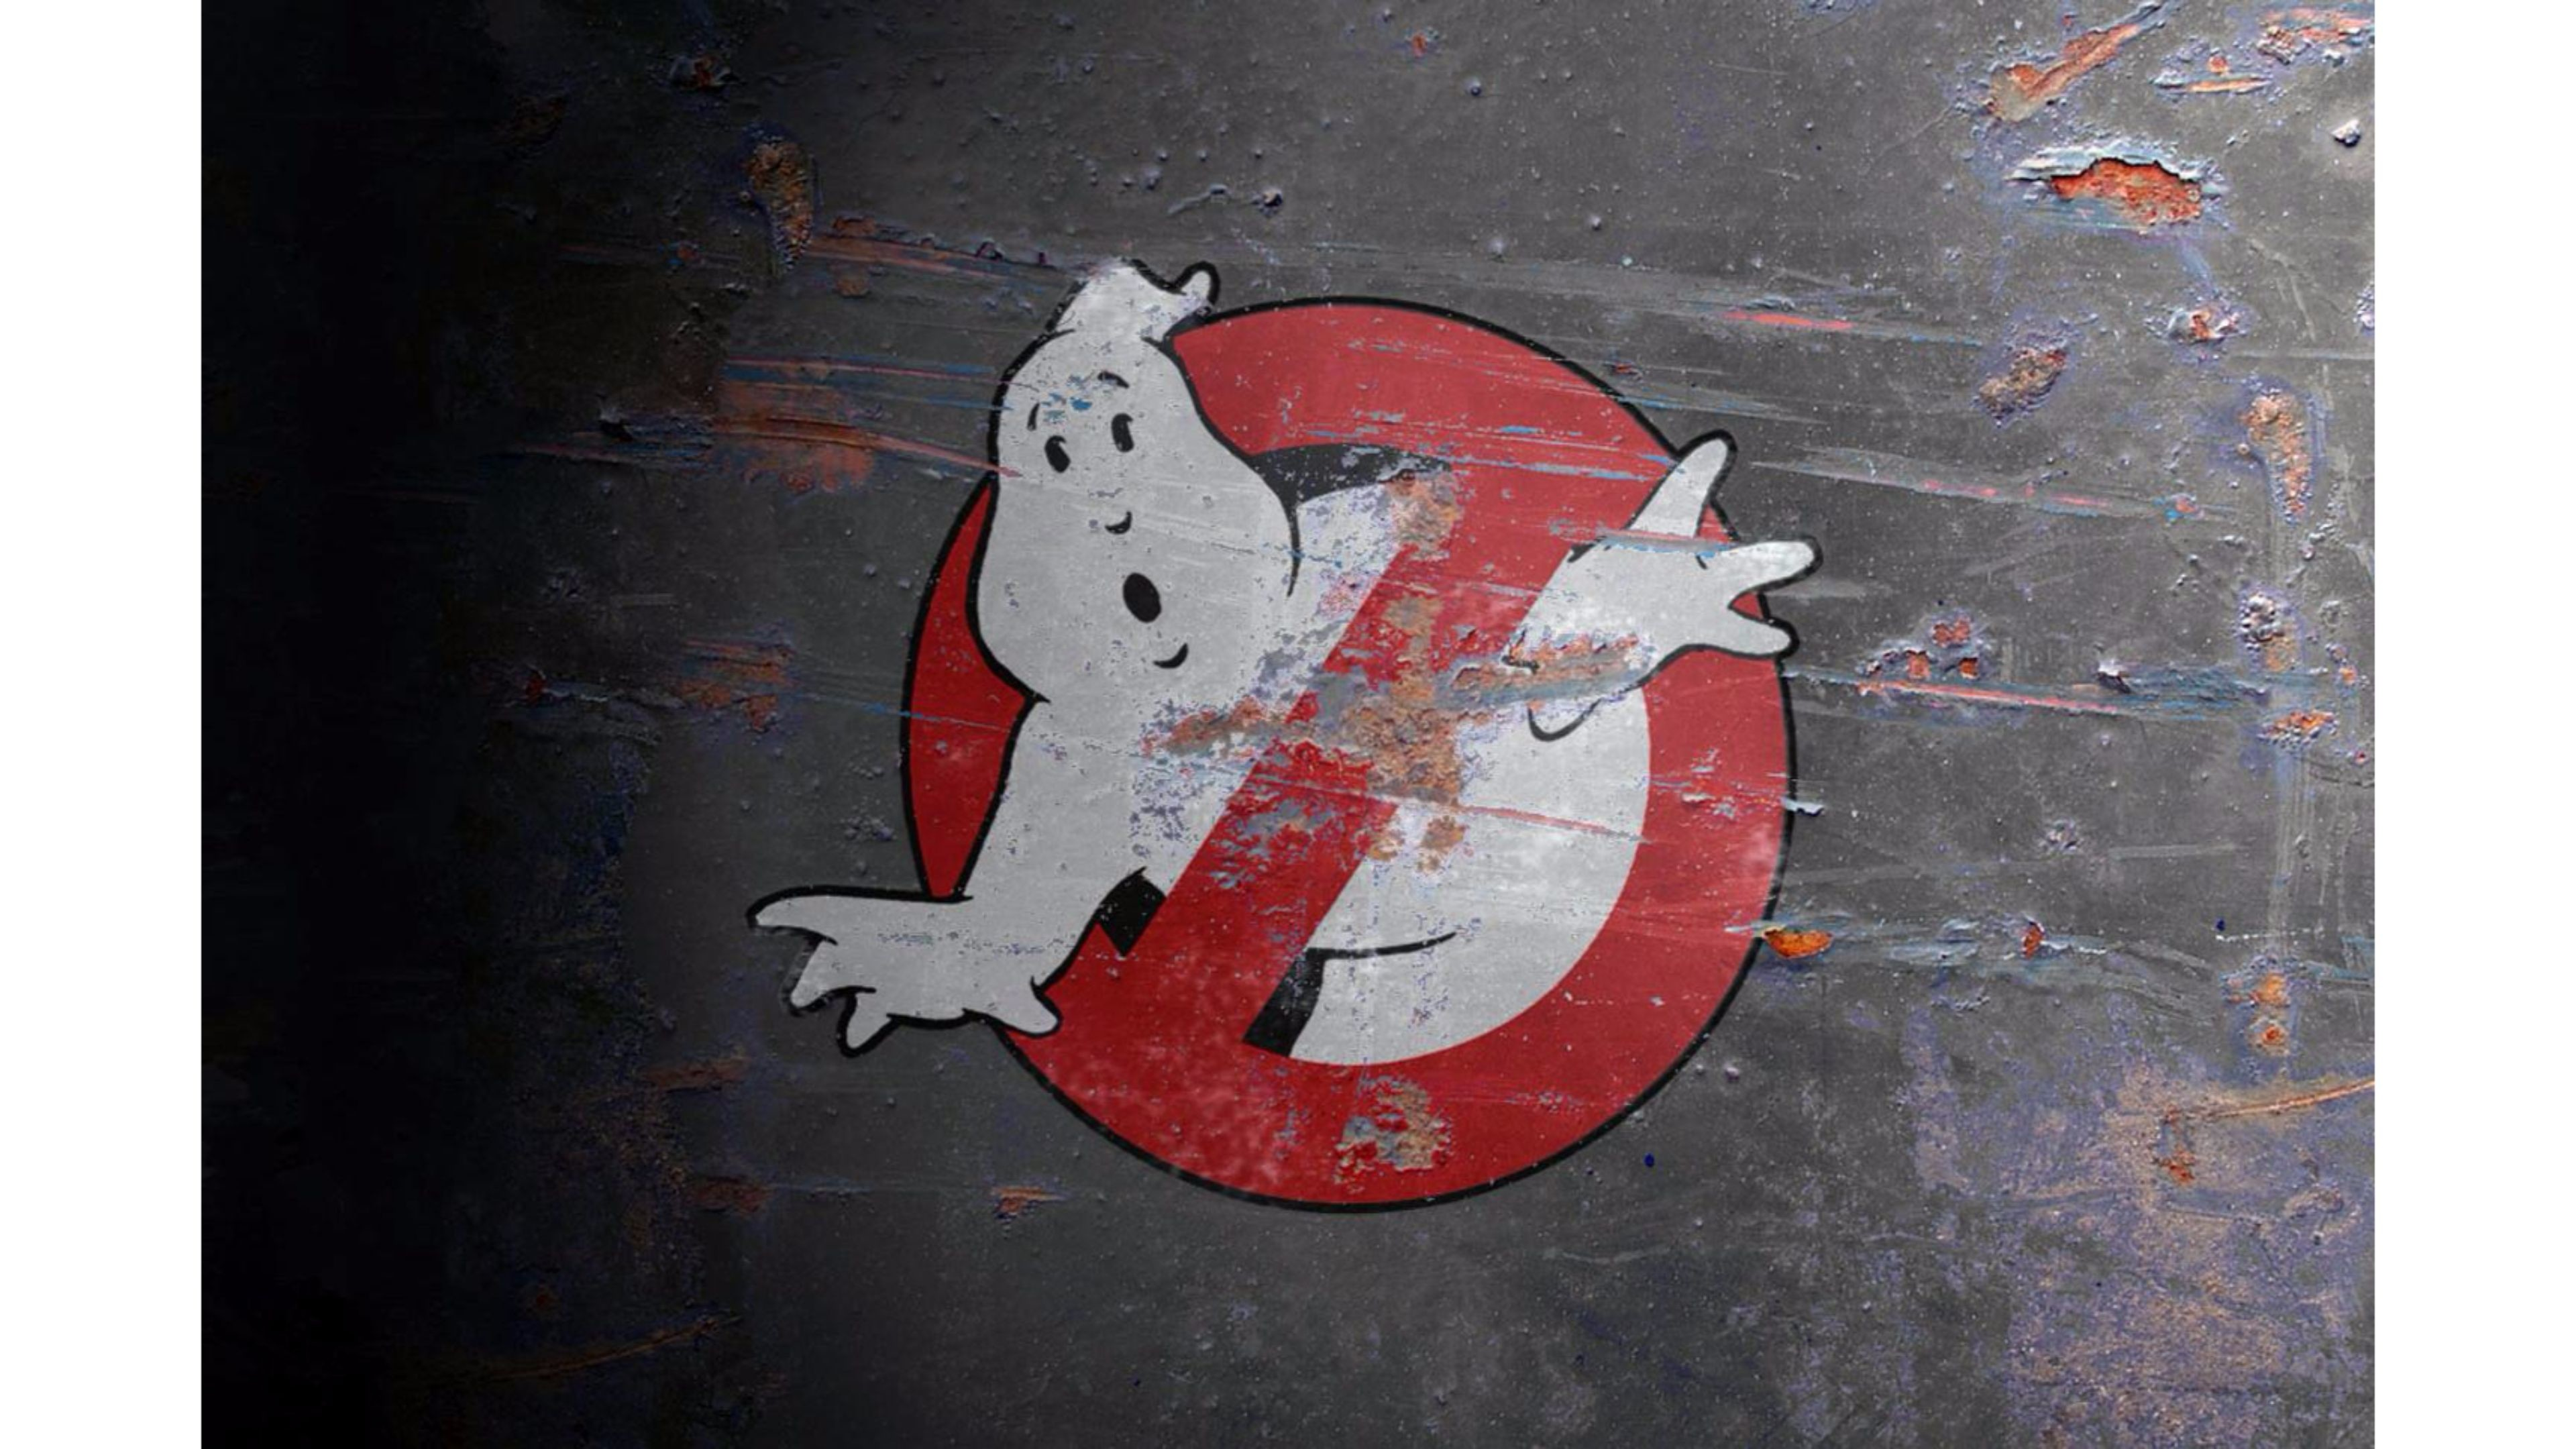 3840x2160 Download 2016 Ghostbusters Movie 4K Wallpaper